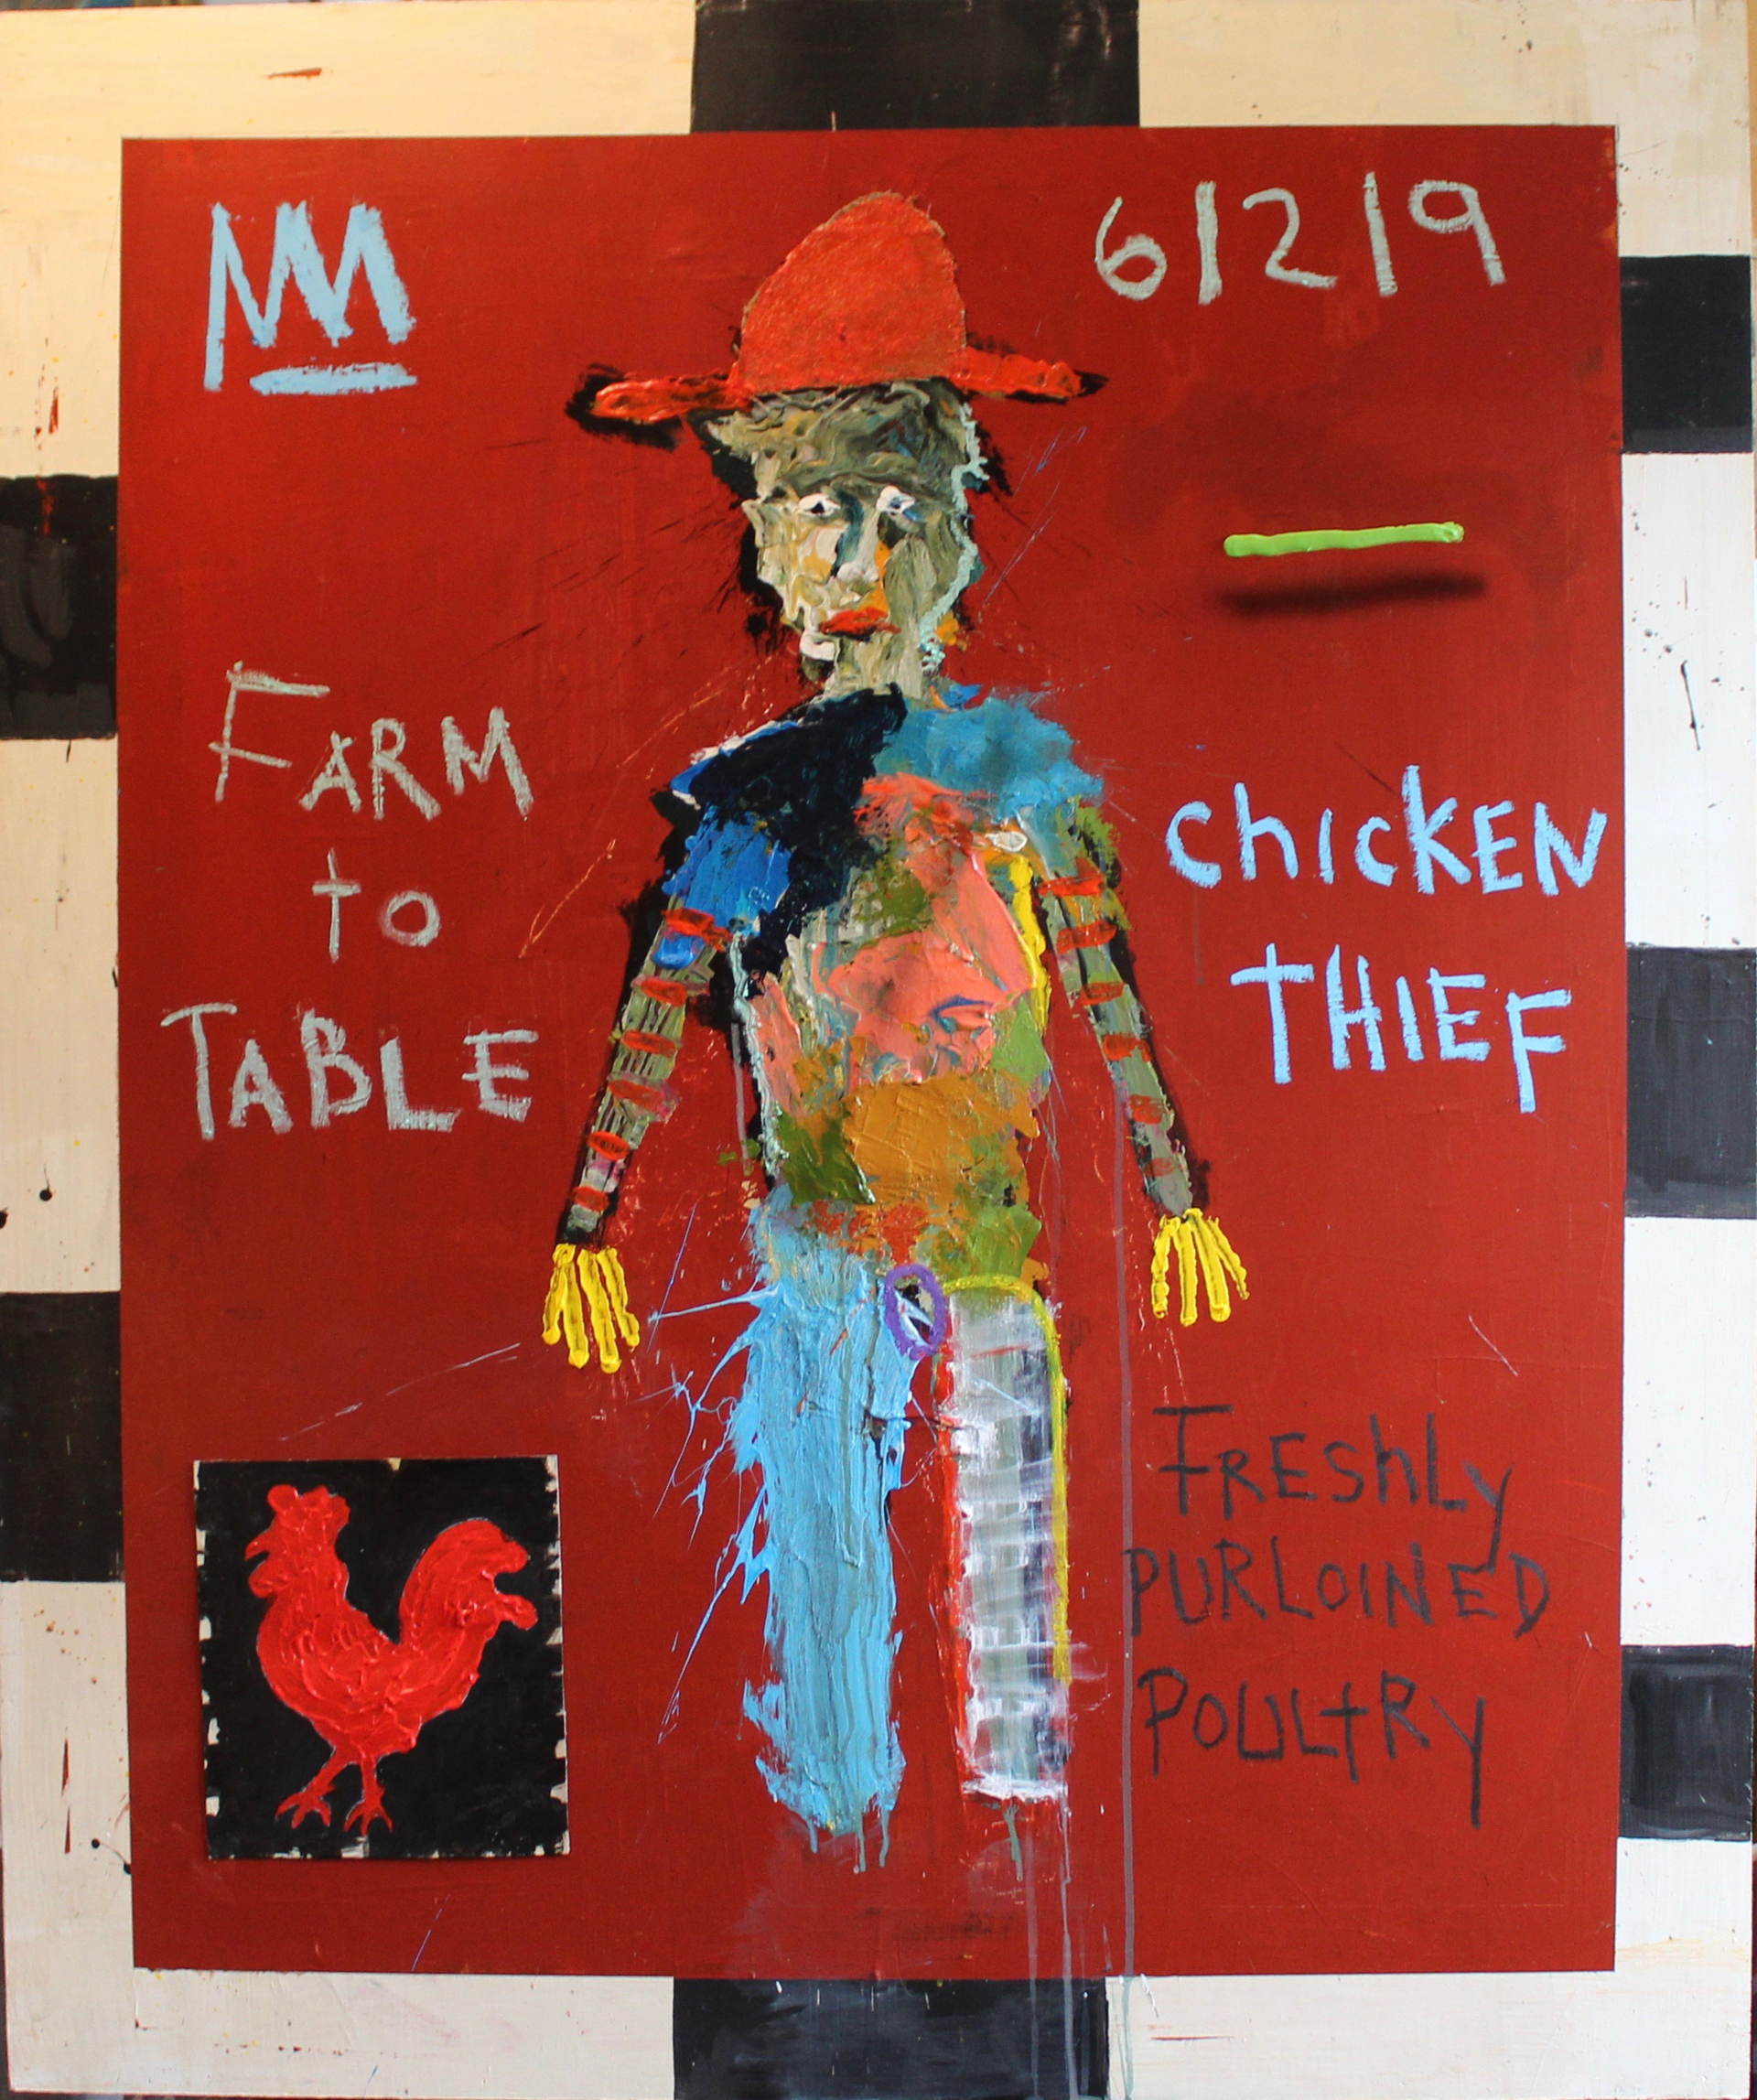 Farm to Table Chicken Thief by Michael Snodgrass